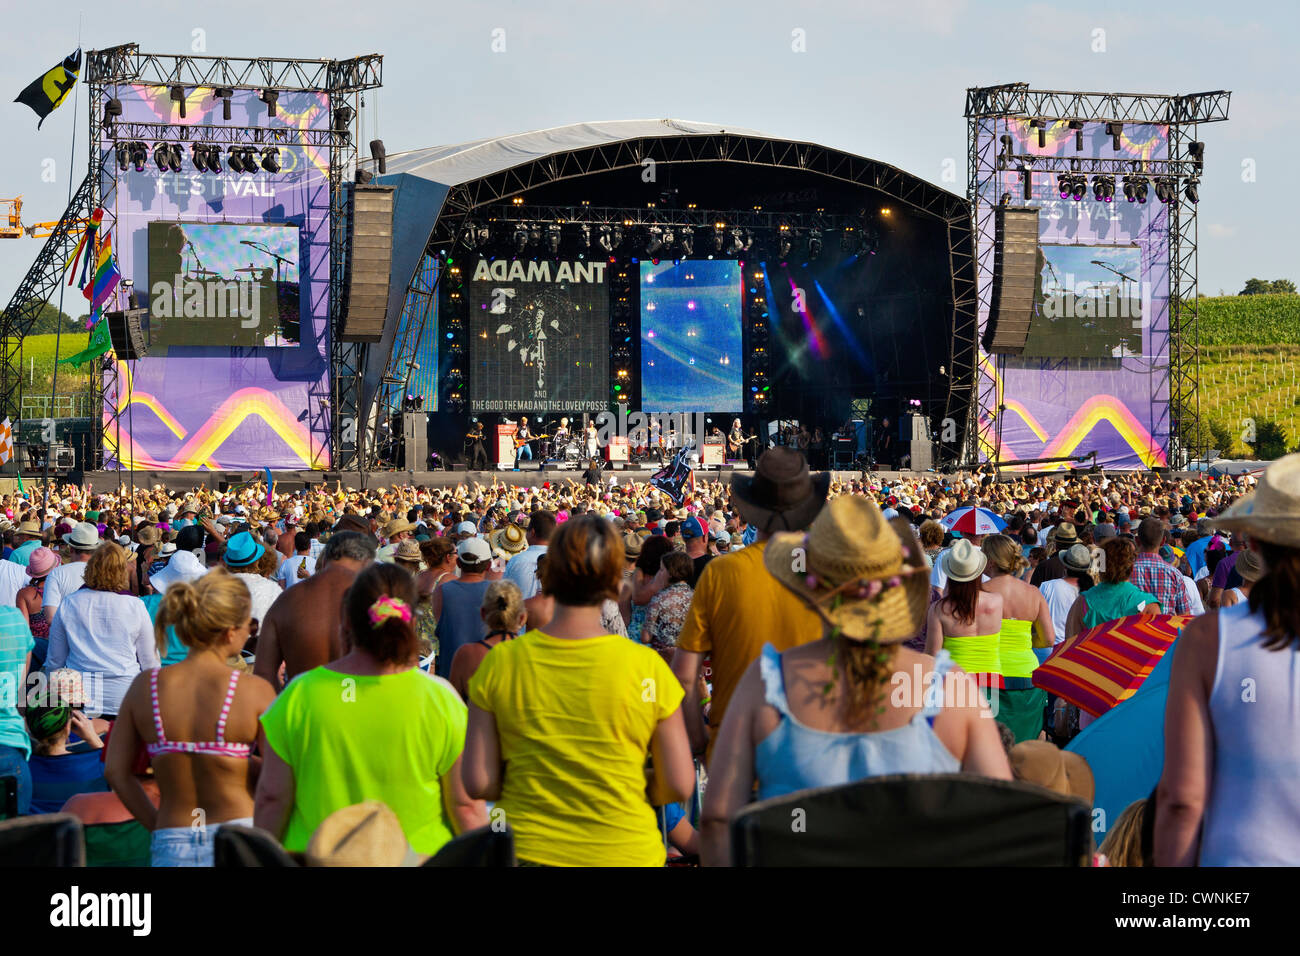 Huge crowd of festival goers in front of the stage at the Rewind Festival Henley on Thames 2012. JMH6056 - Stock Image